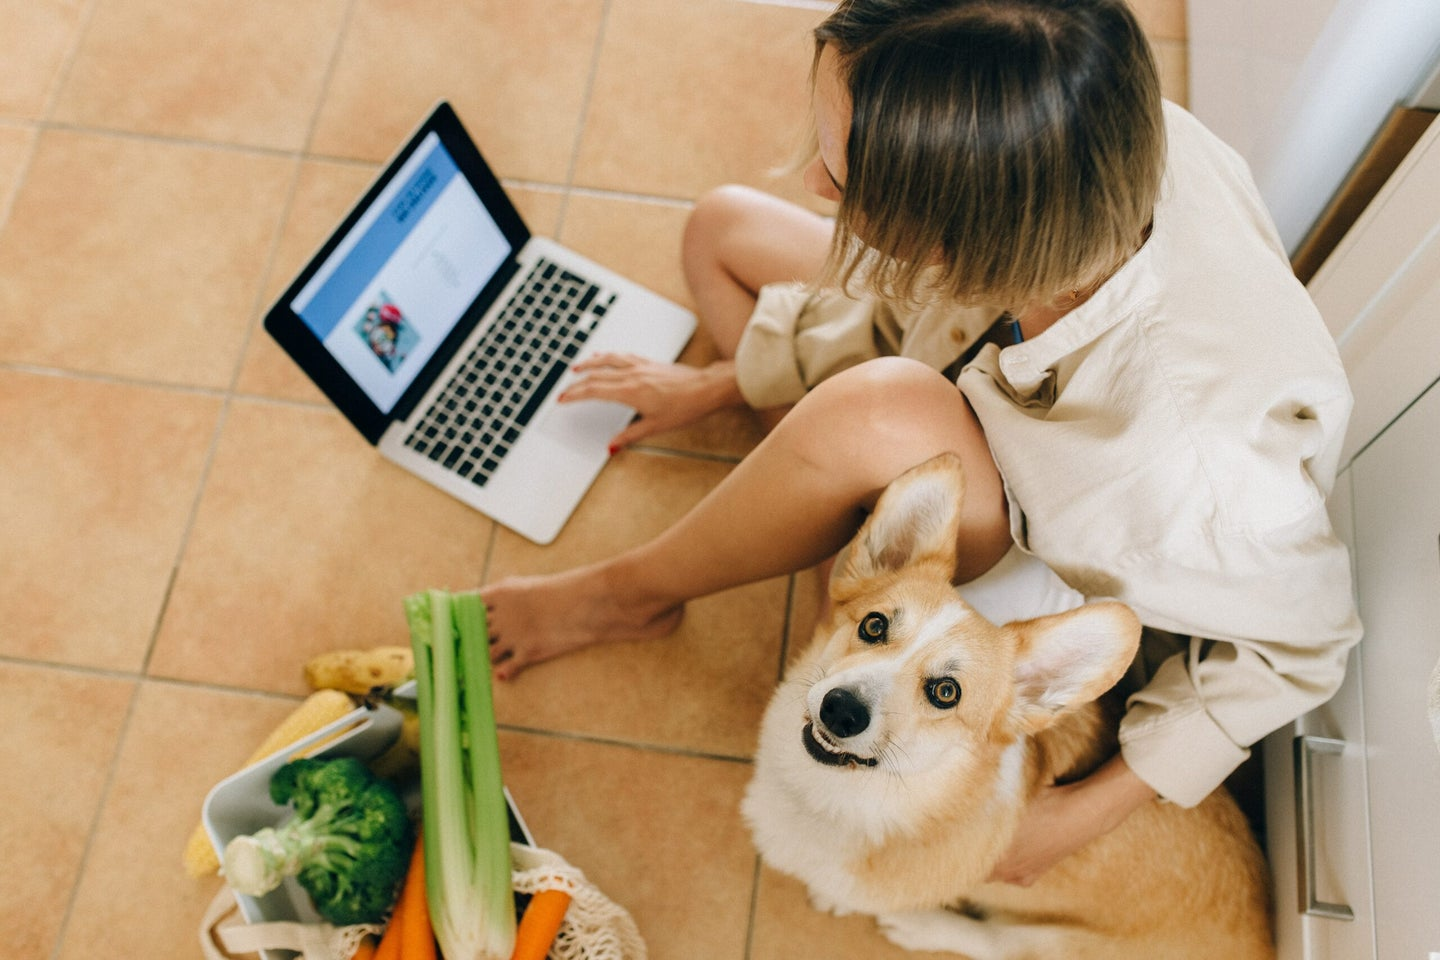 Woman on laptop with dog and bag of vegetables.